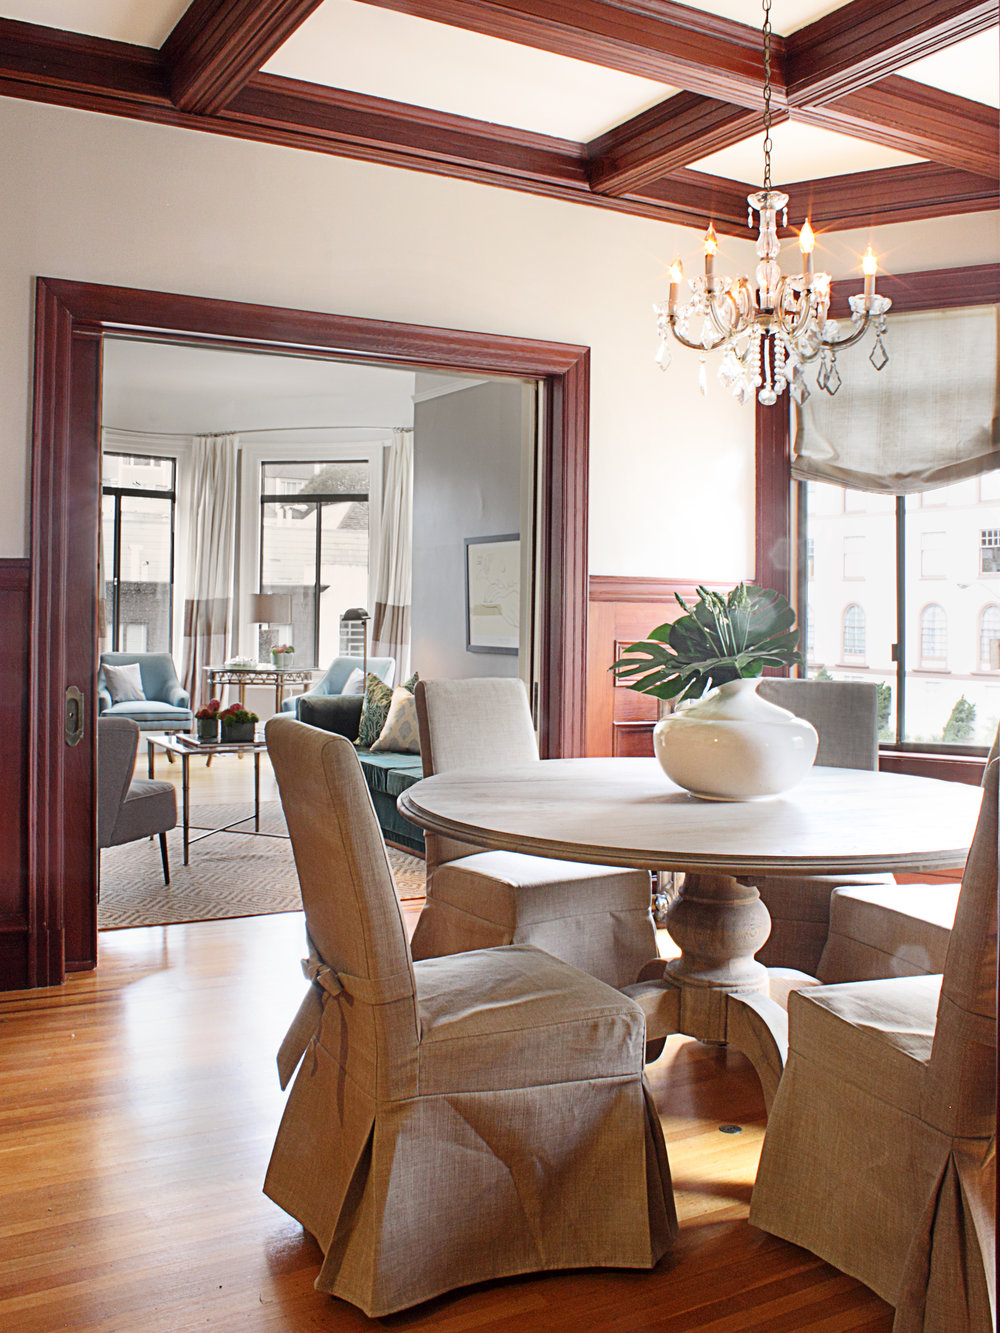 pacific heights pied-a-terre - 1770 pacific avenue - $1,050,000